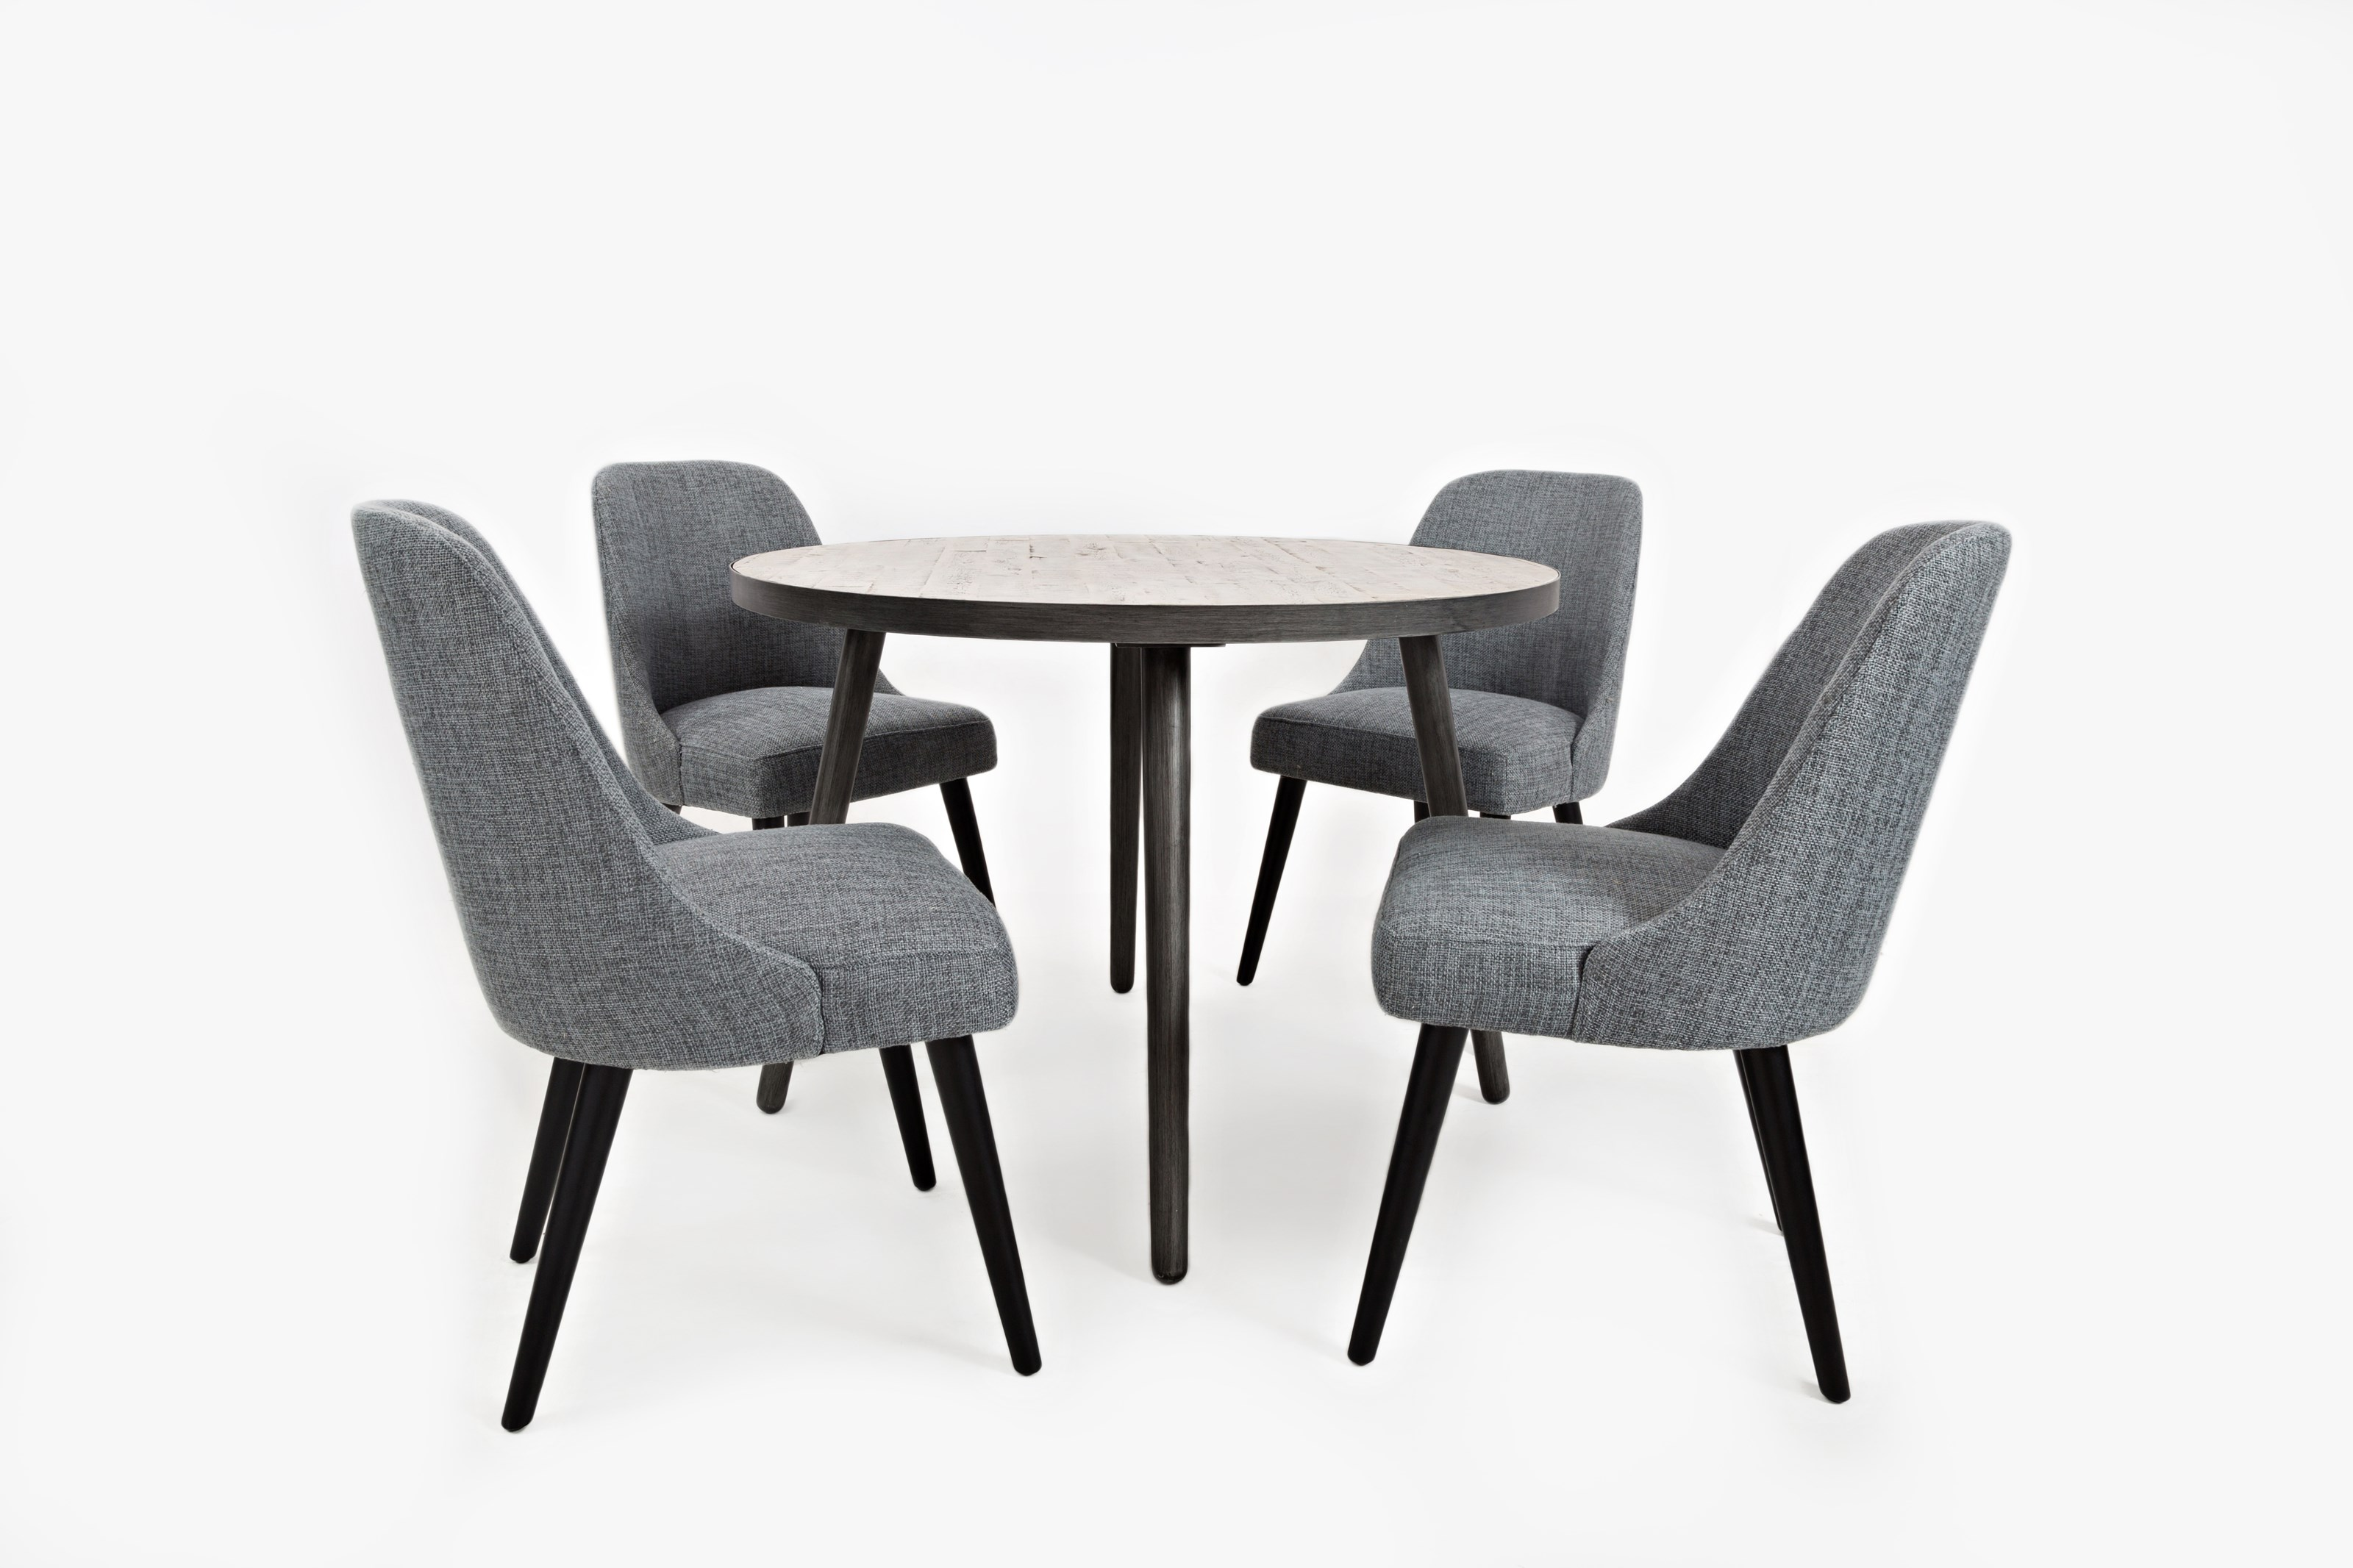 Round Dining Table And Chair Set By Jofran Wolf And Gardiner - 42 round black dining table